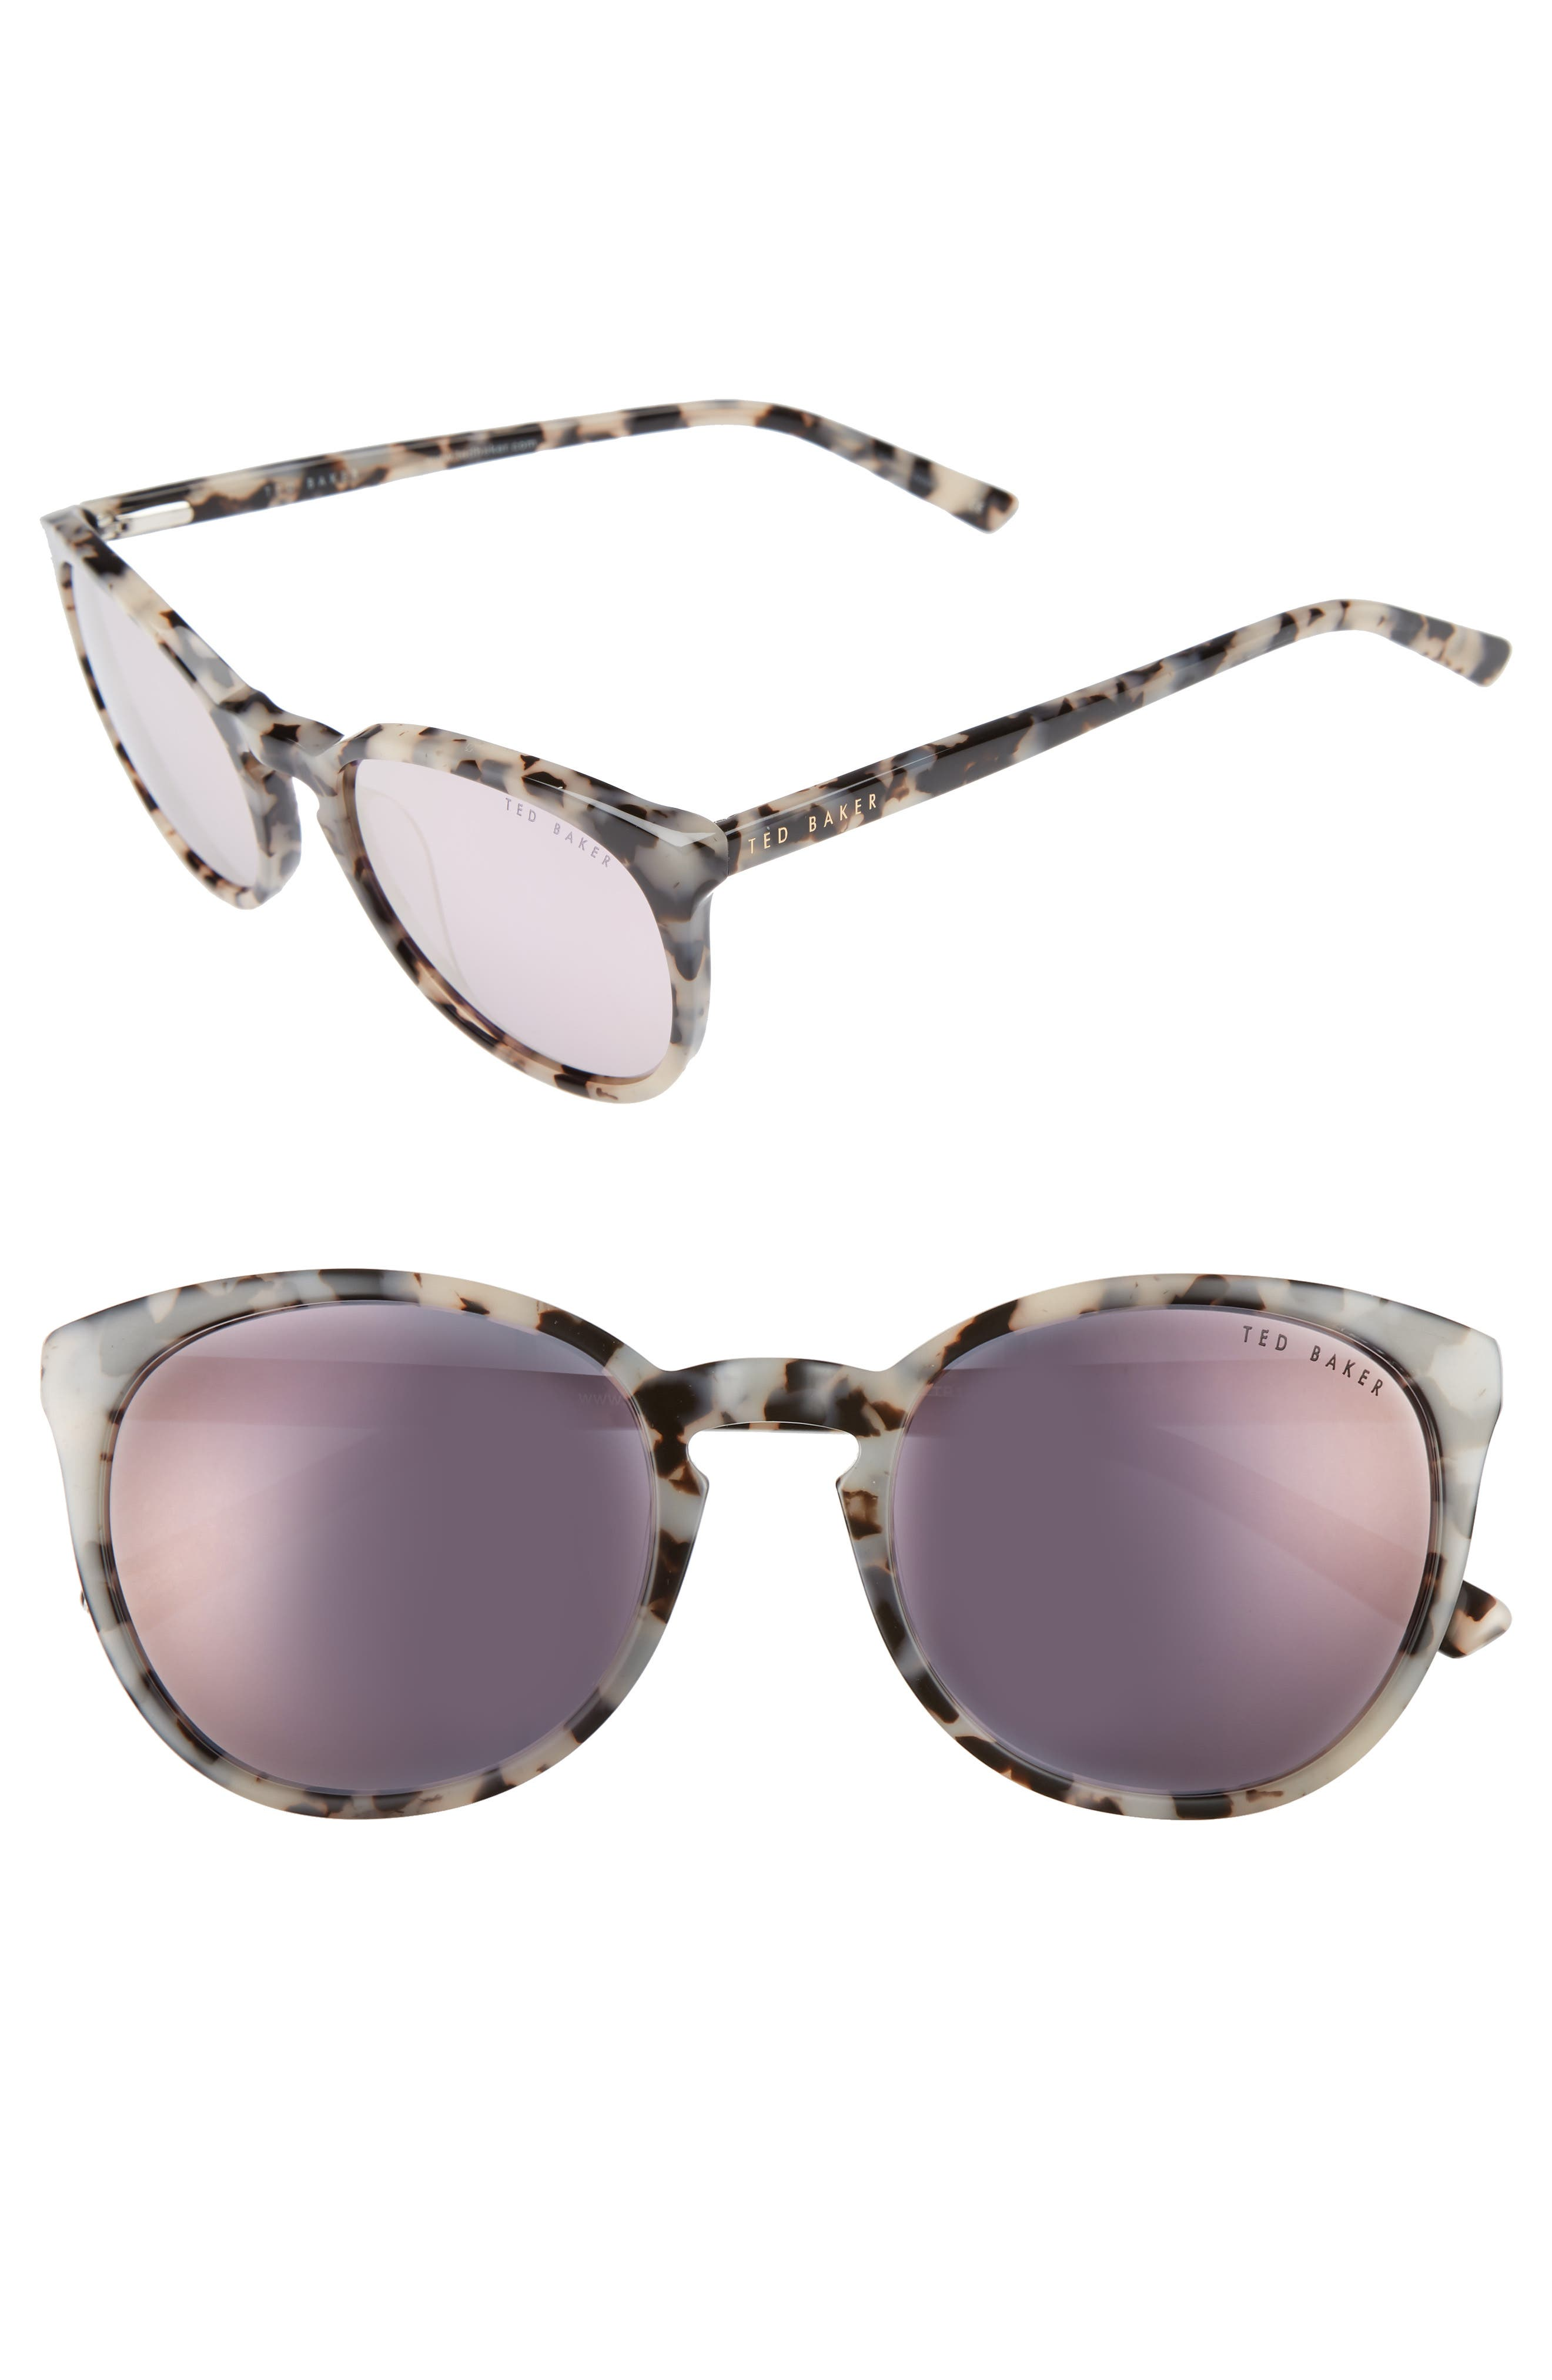 53mm Round Sunglasses,                         Main,                         color, Ivory